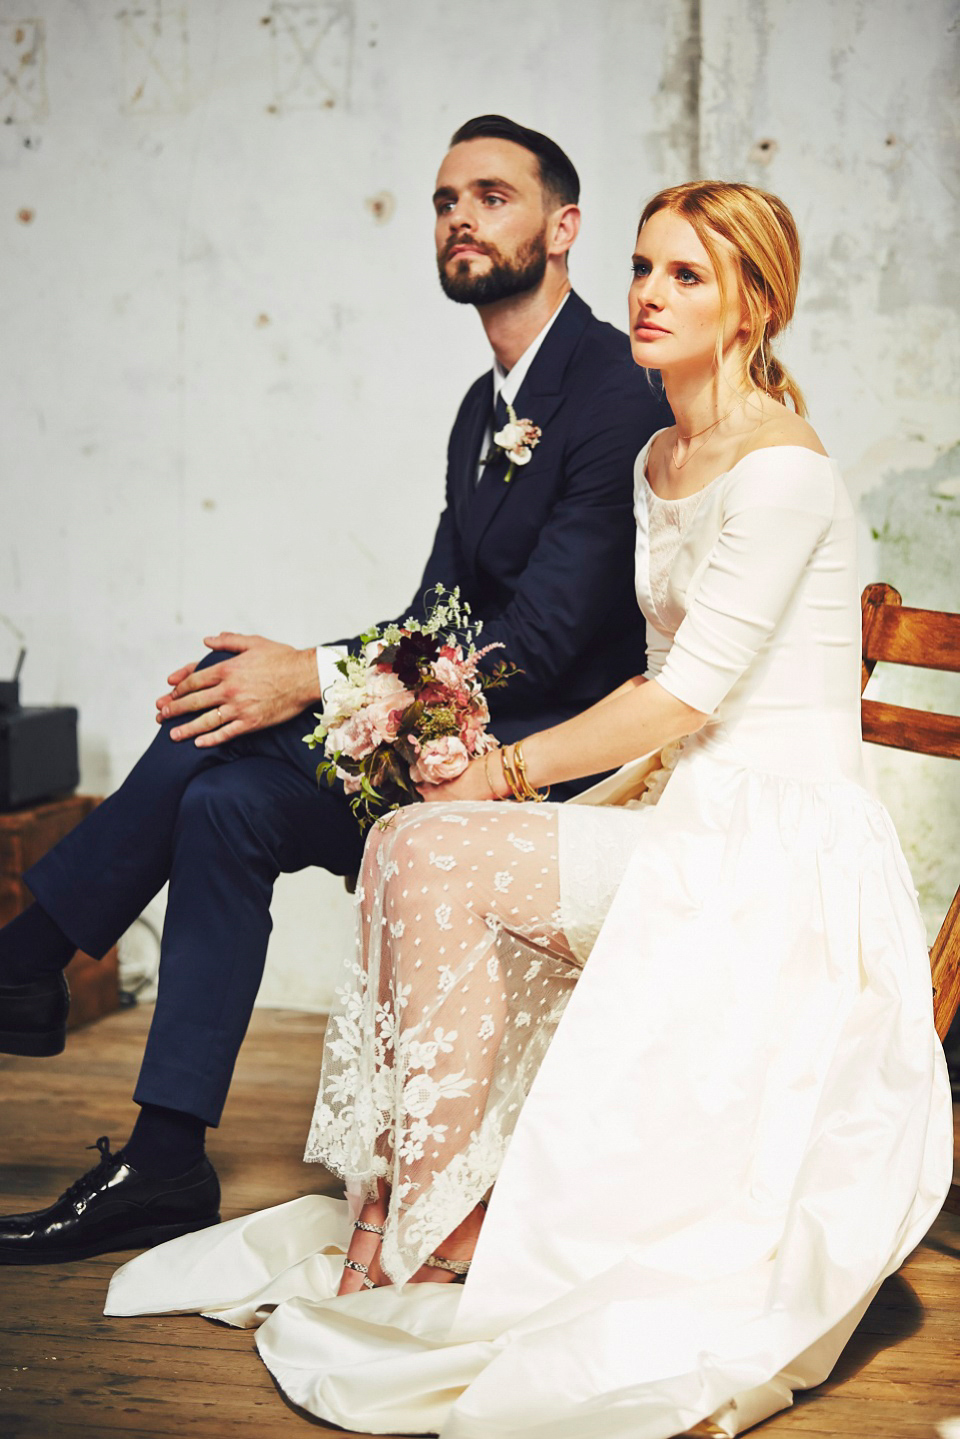 Two dresses and Two Ceremonies for a Cool, Modern Wedding in a Deconsecrated Church (Weddings )